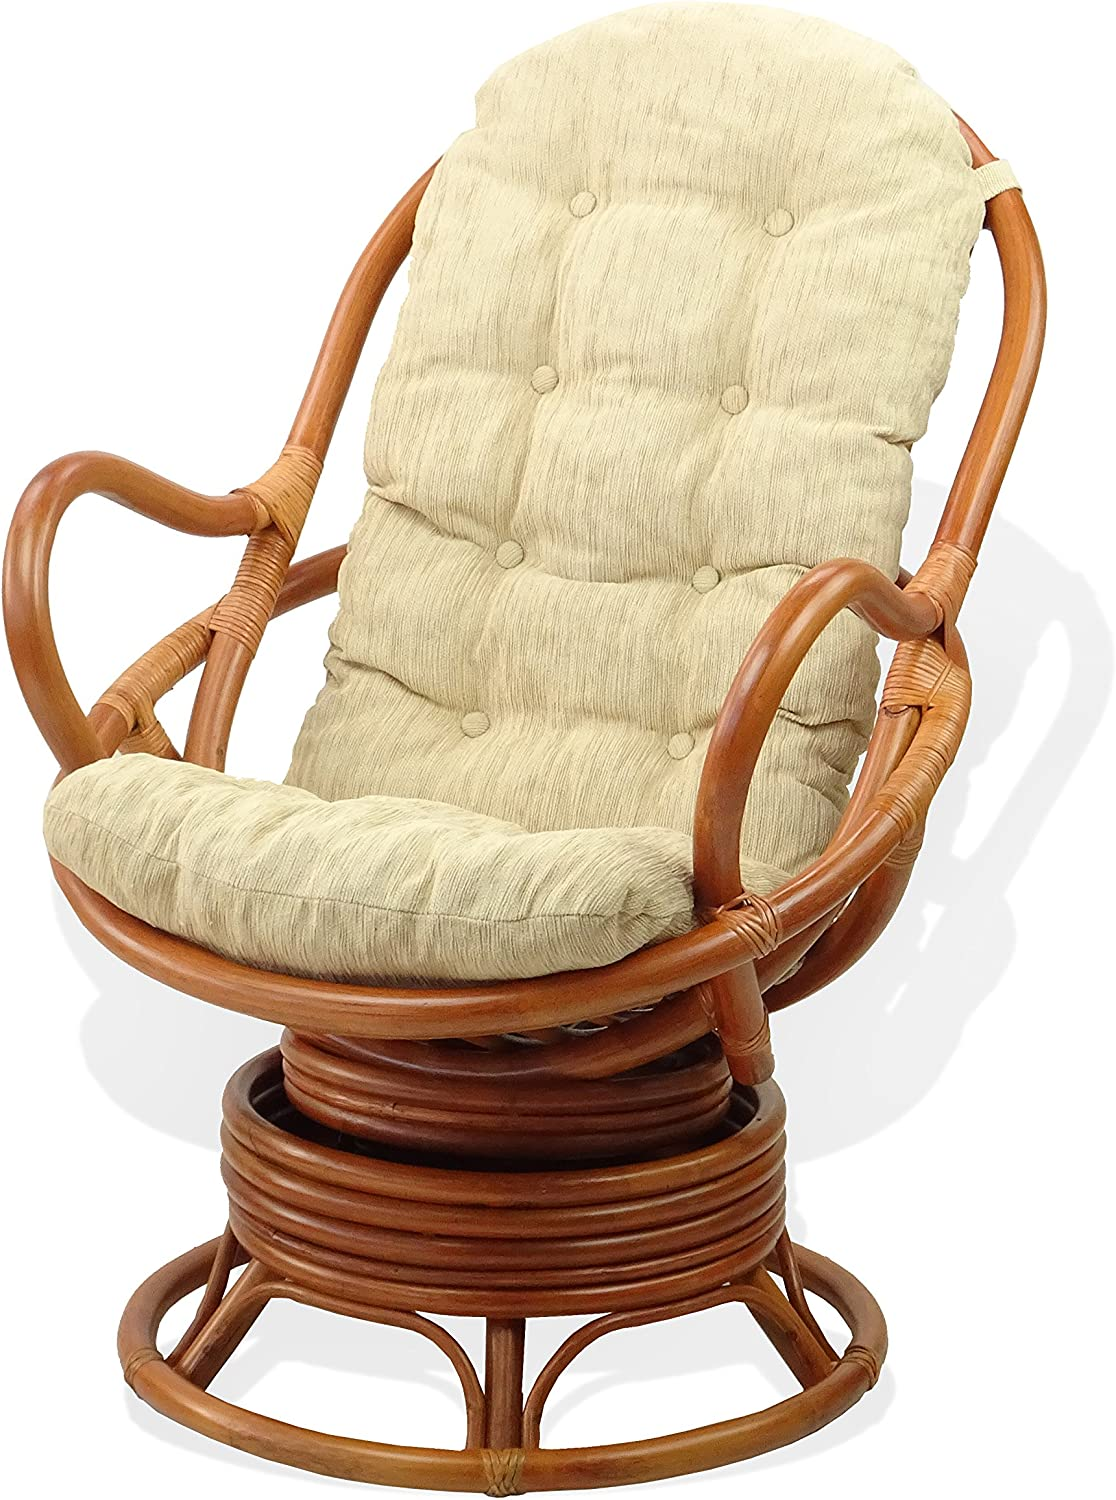 excellence Lounge Swivel Rocking Java Chair Natural Wicker Rattan Max 69% OFF Handmade